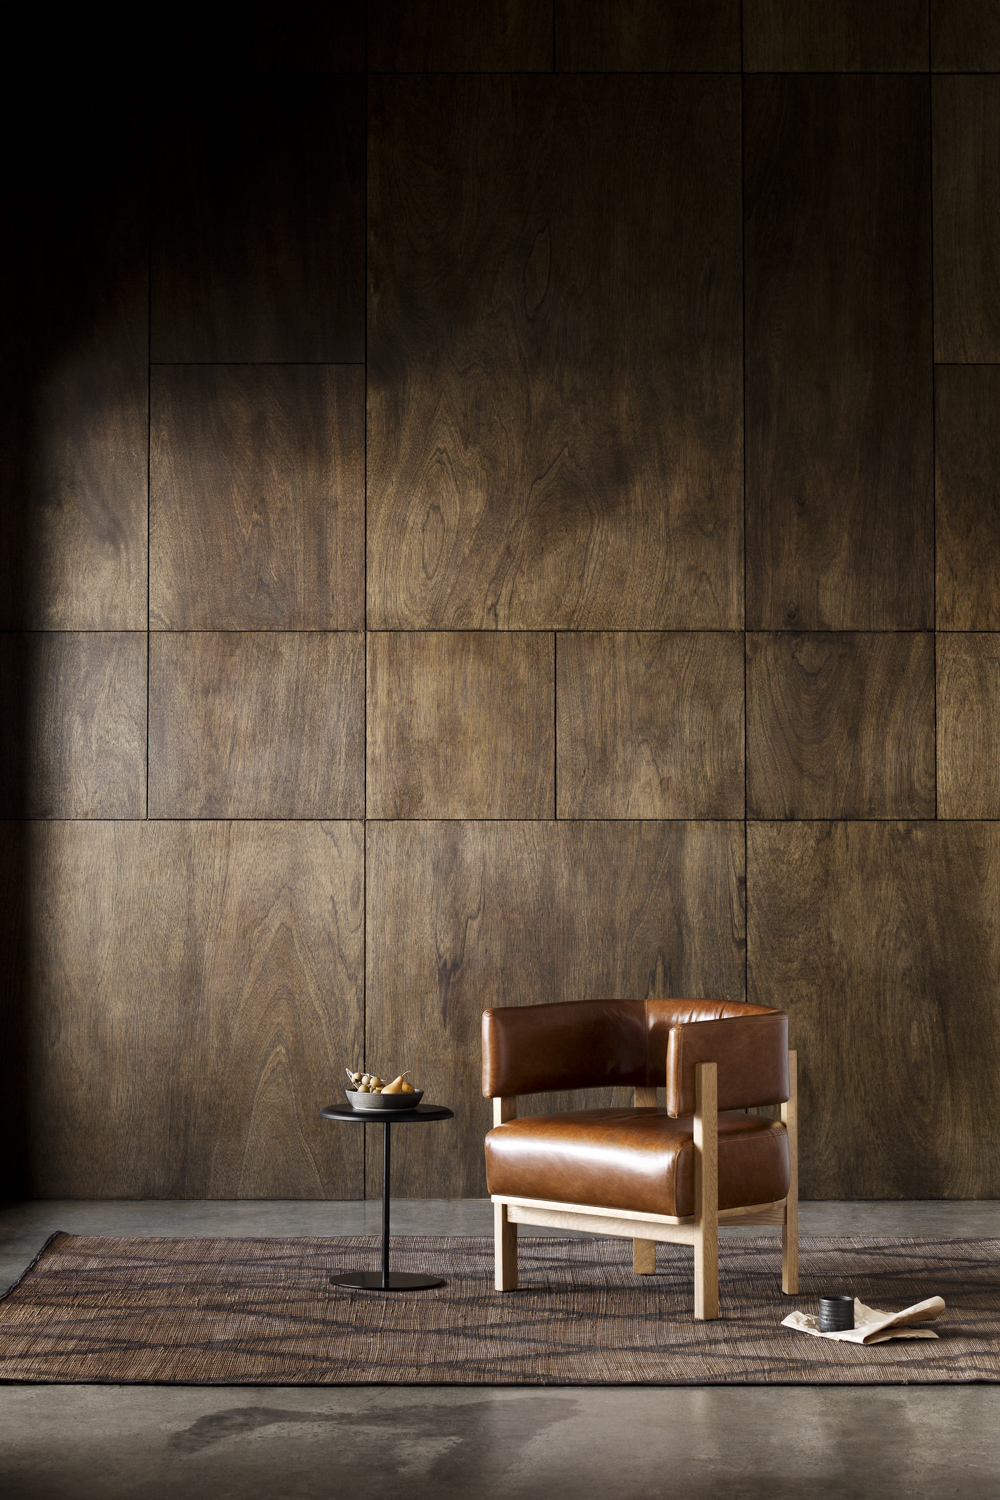 Gallery Of Flo Armchair By Anaca Studio Local Australian Furniture Design Collingwood, Melbourne Image 7